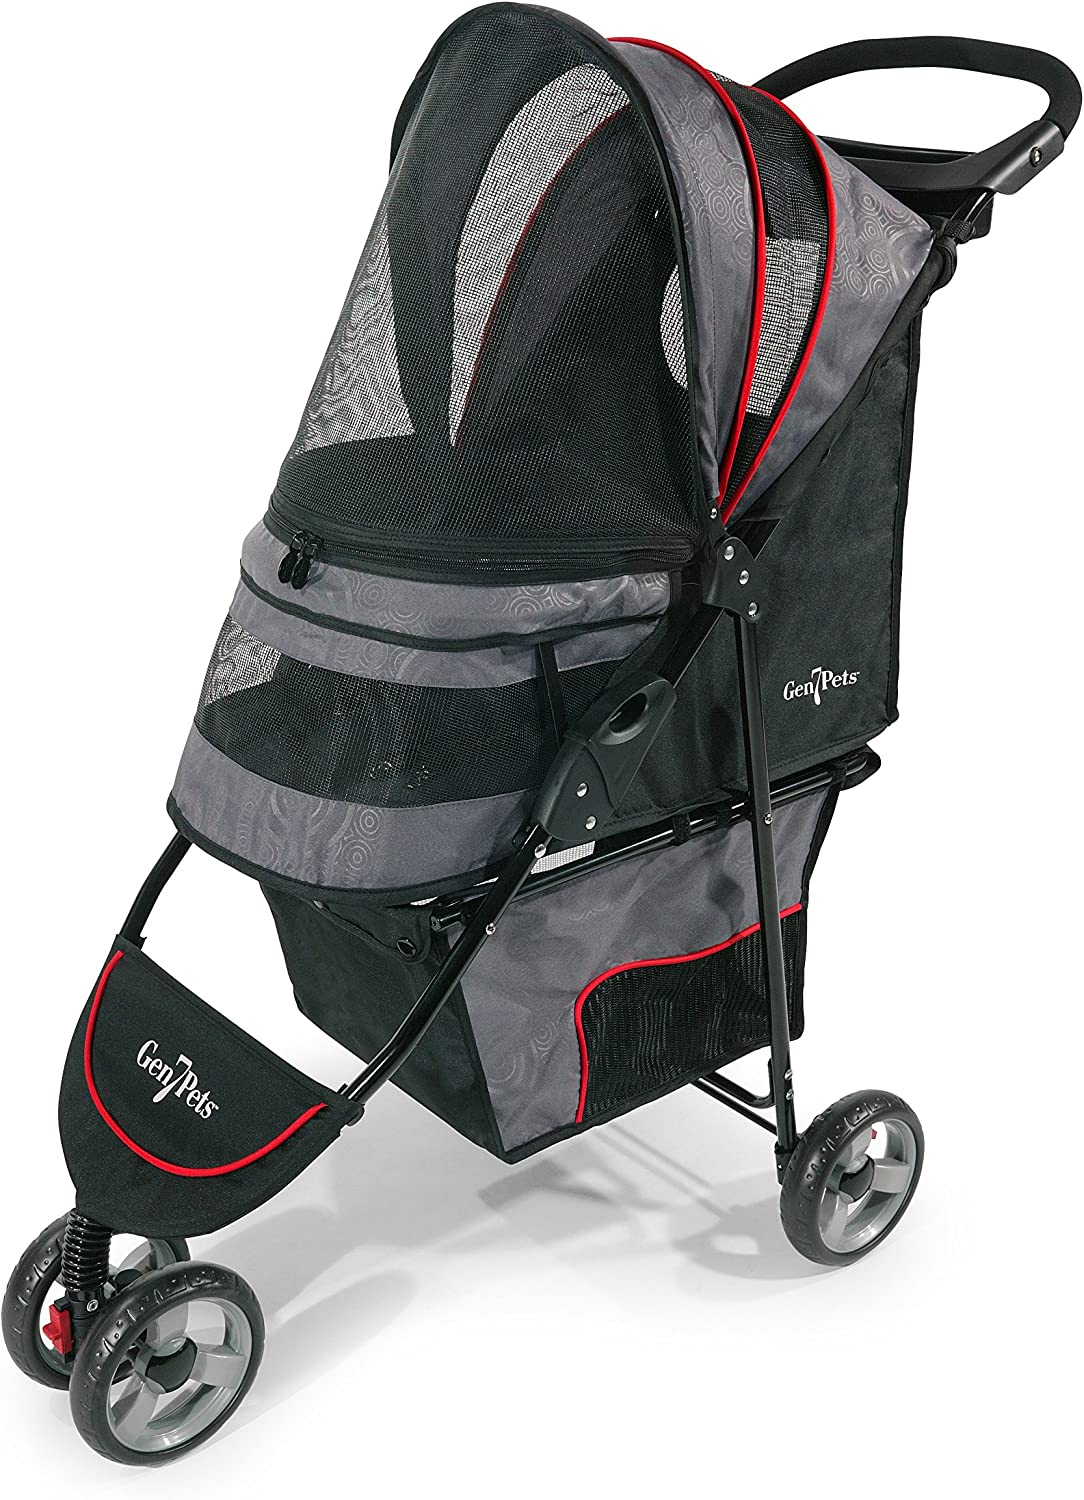 Gen7 Regal Plus Pet Stroller for Dogs and Cats Lightweight, Compact and Portable with Durable Wheels